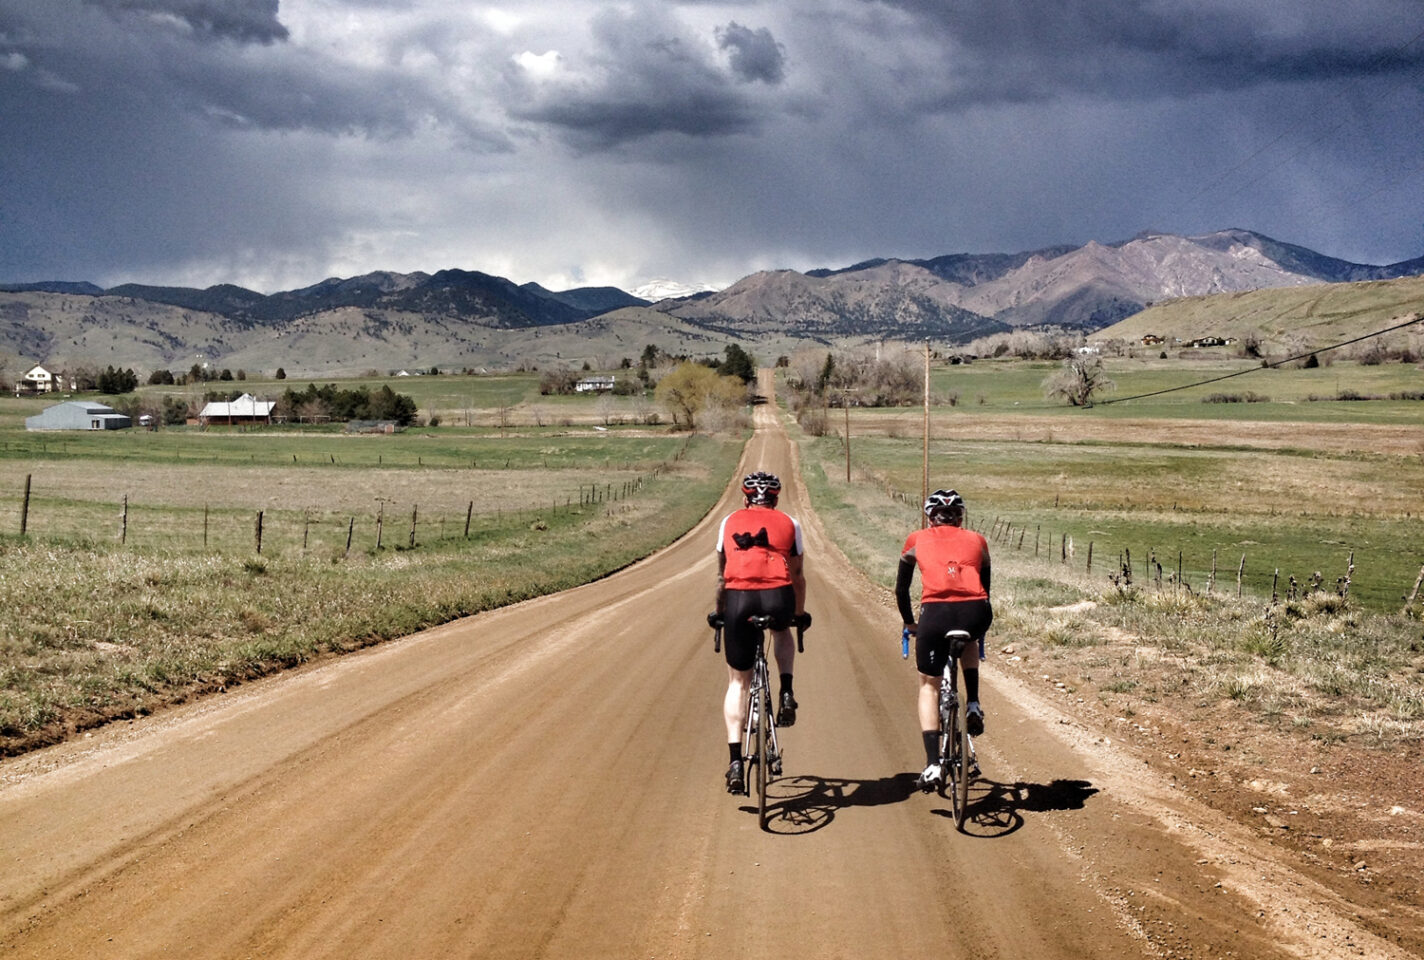 Two cyclists ride into the distance on dirt roads in North Boulder, Colorado.